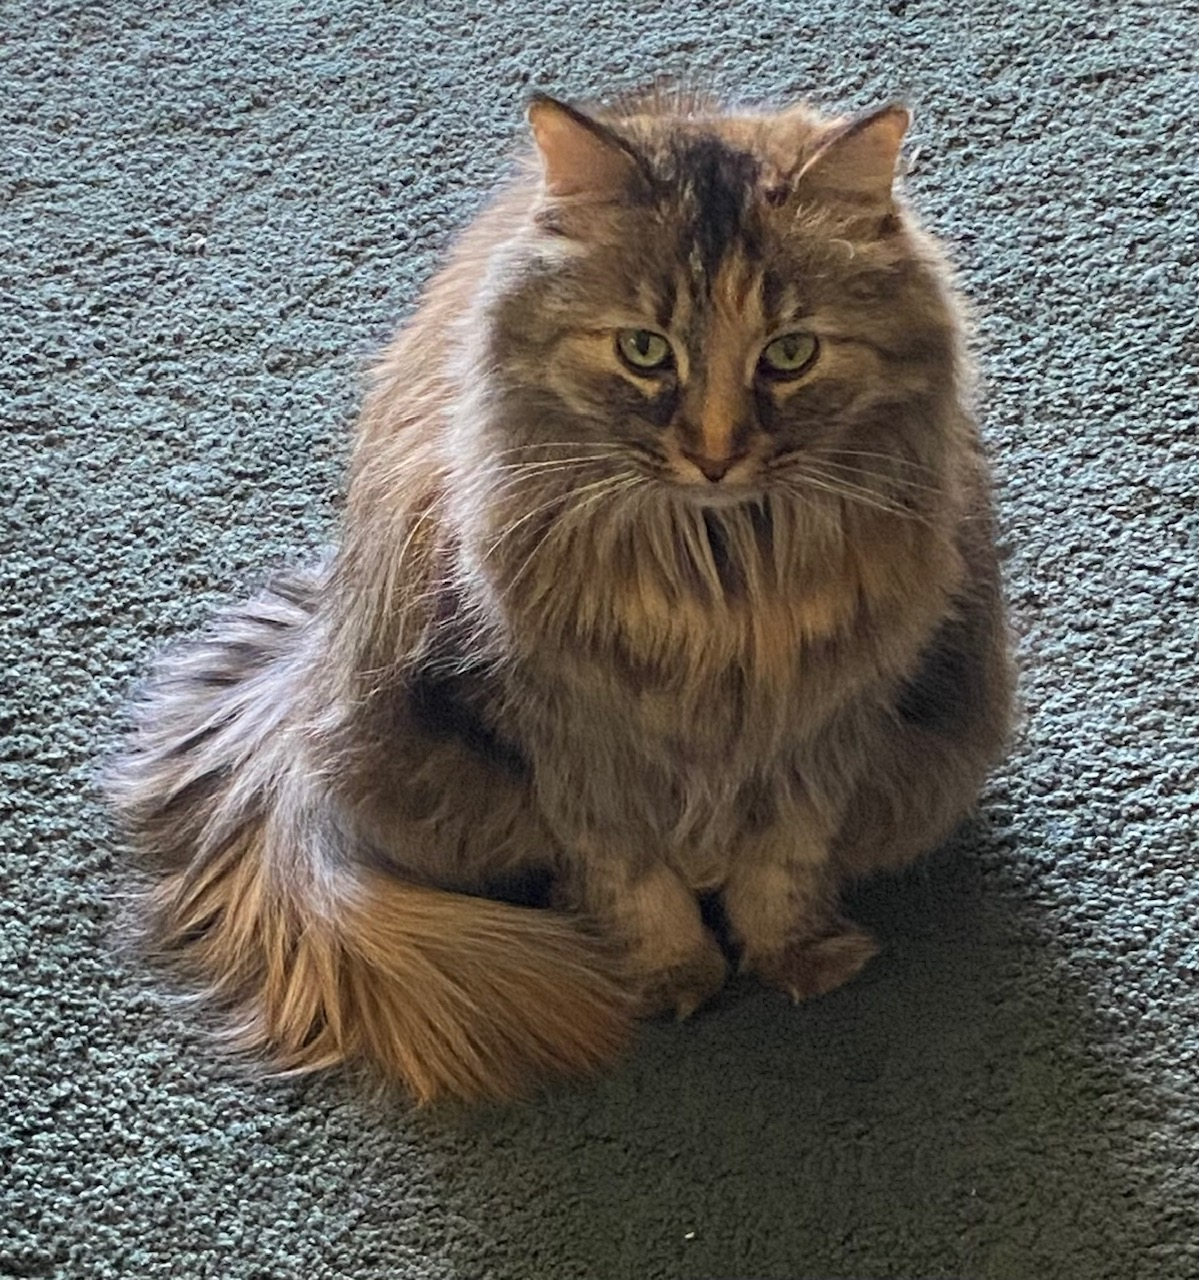 PIcture of Gidget-Long-haired calico cat, sitting on a blue rug, staring at camera. Extroverted Introvert